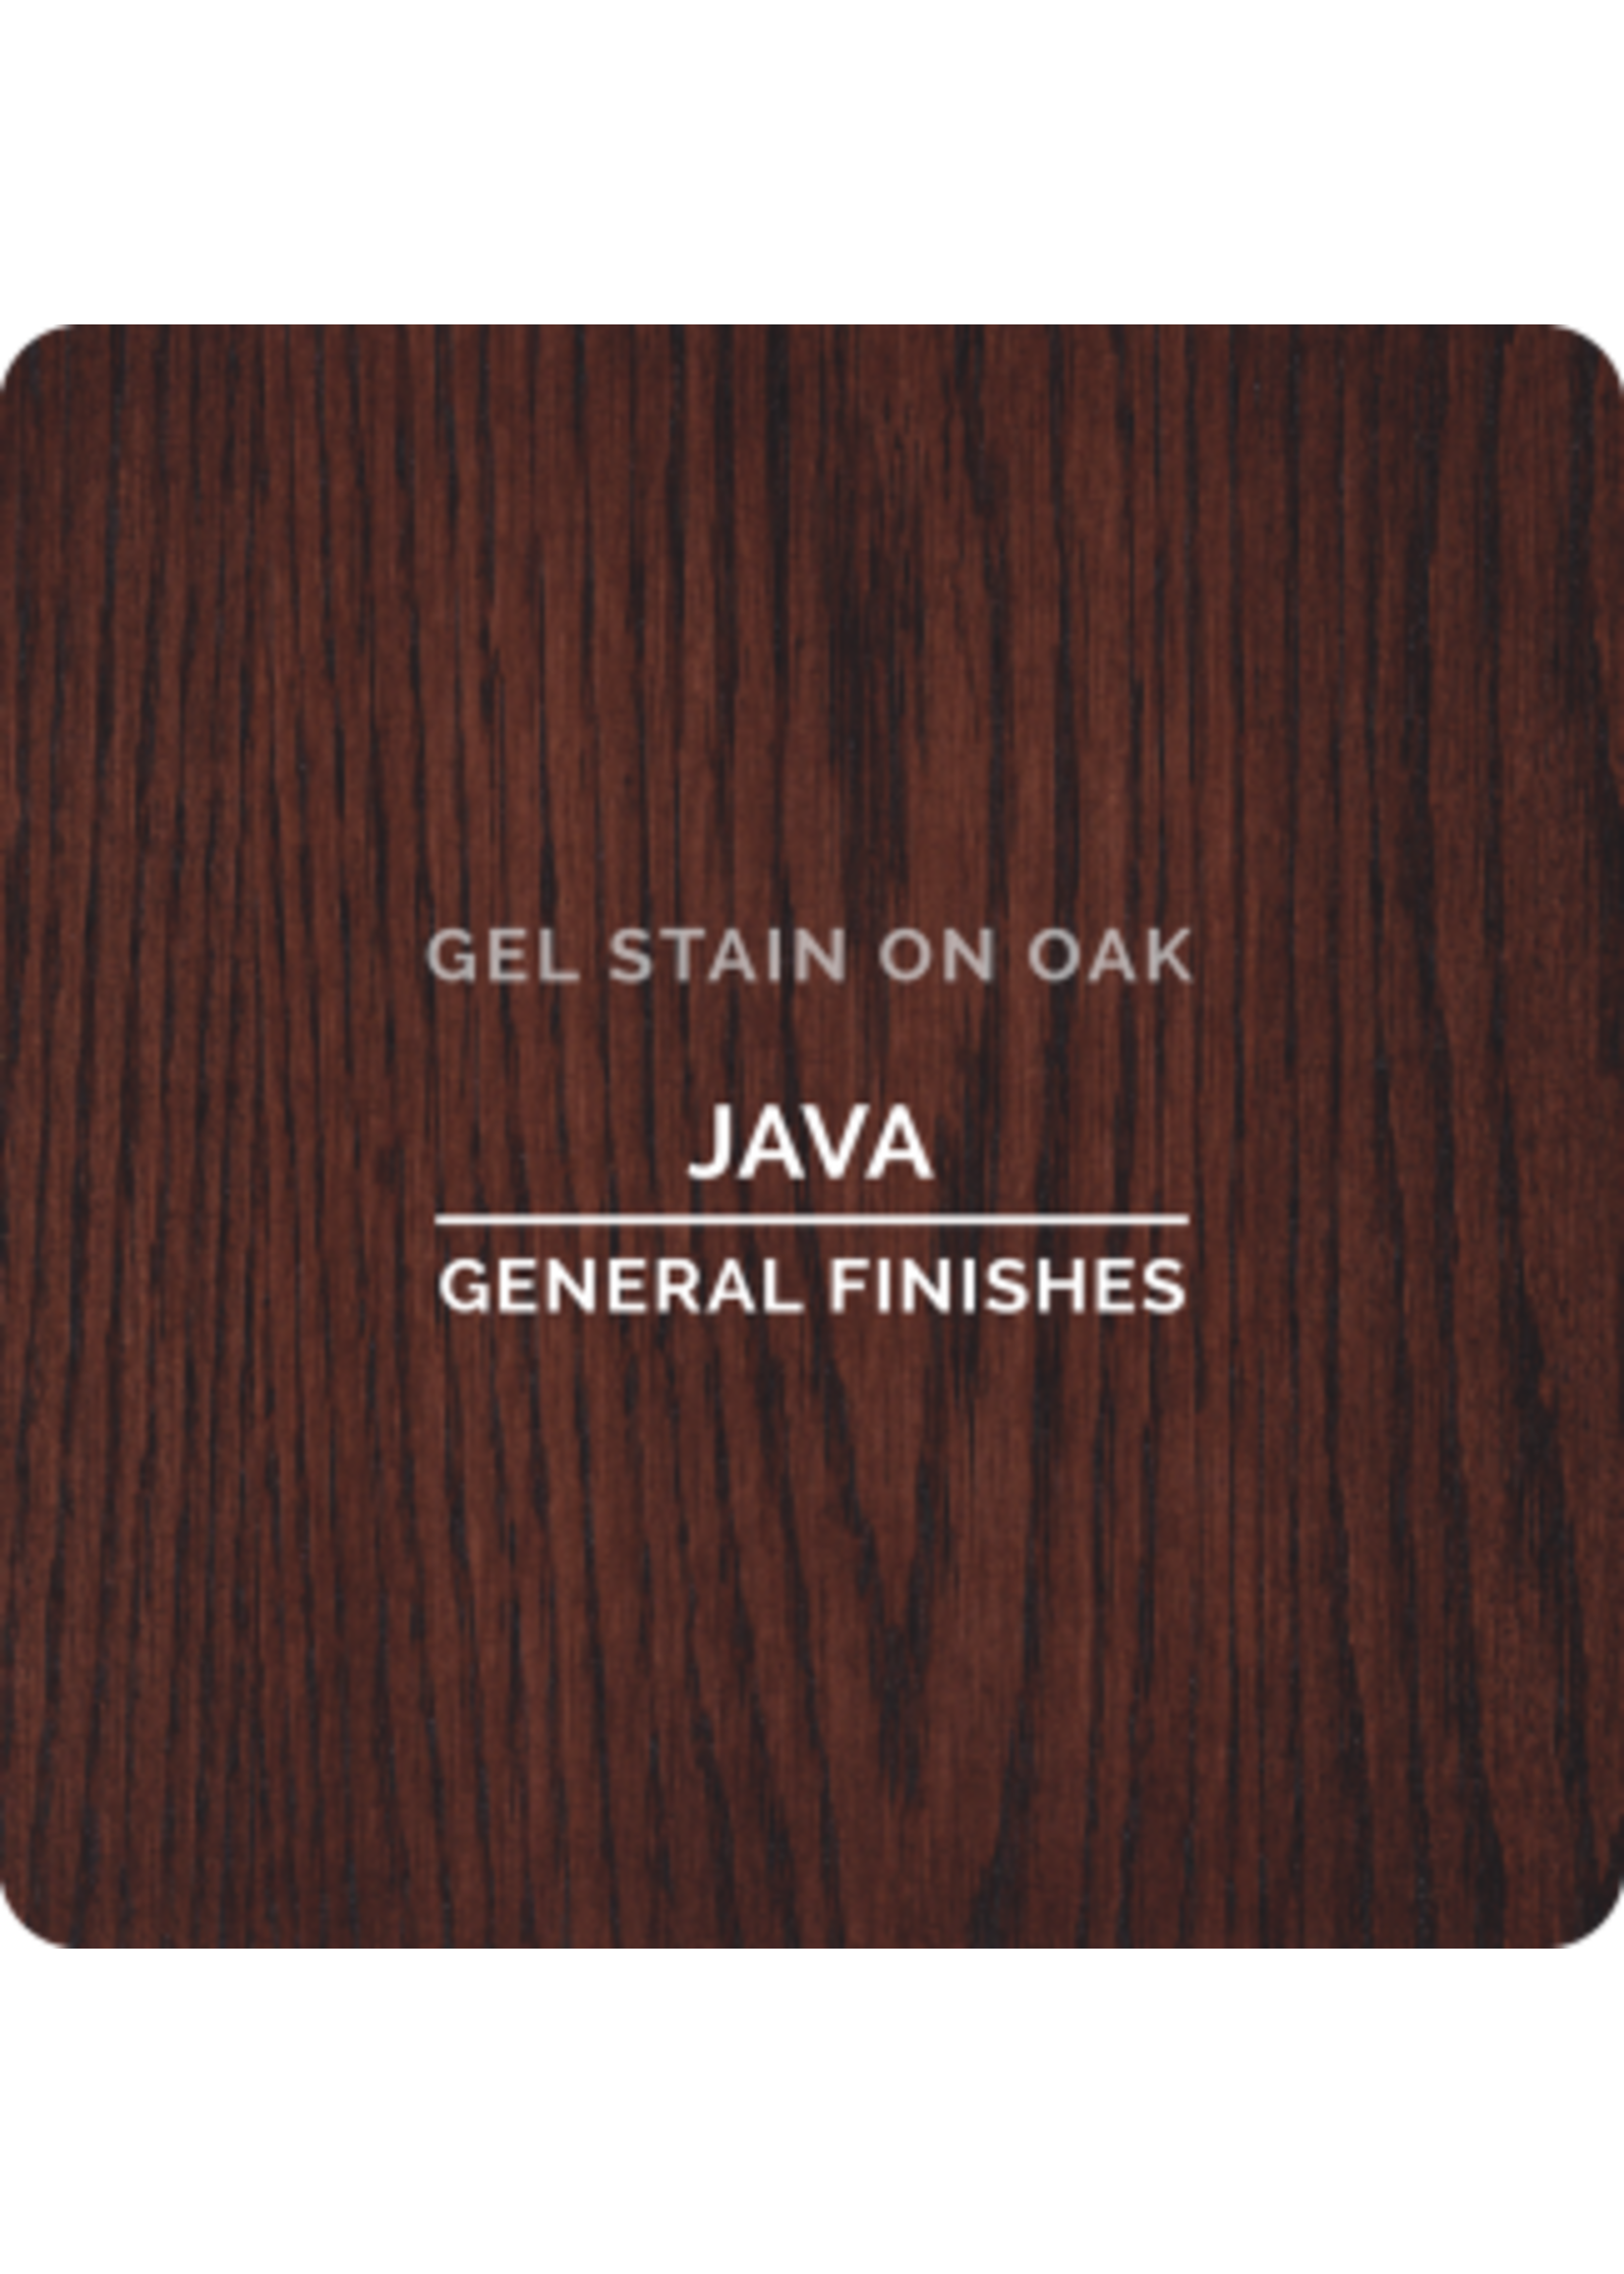 General Finishes Java General Finishes Gel Stain